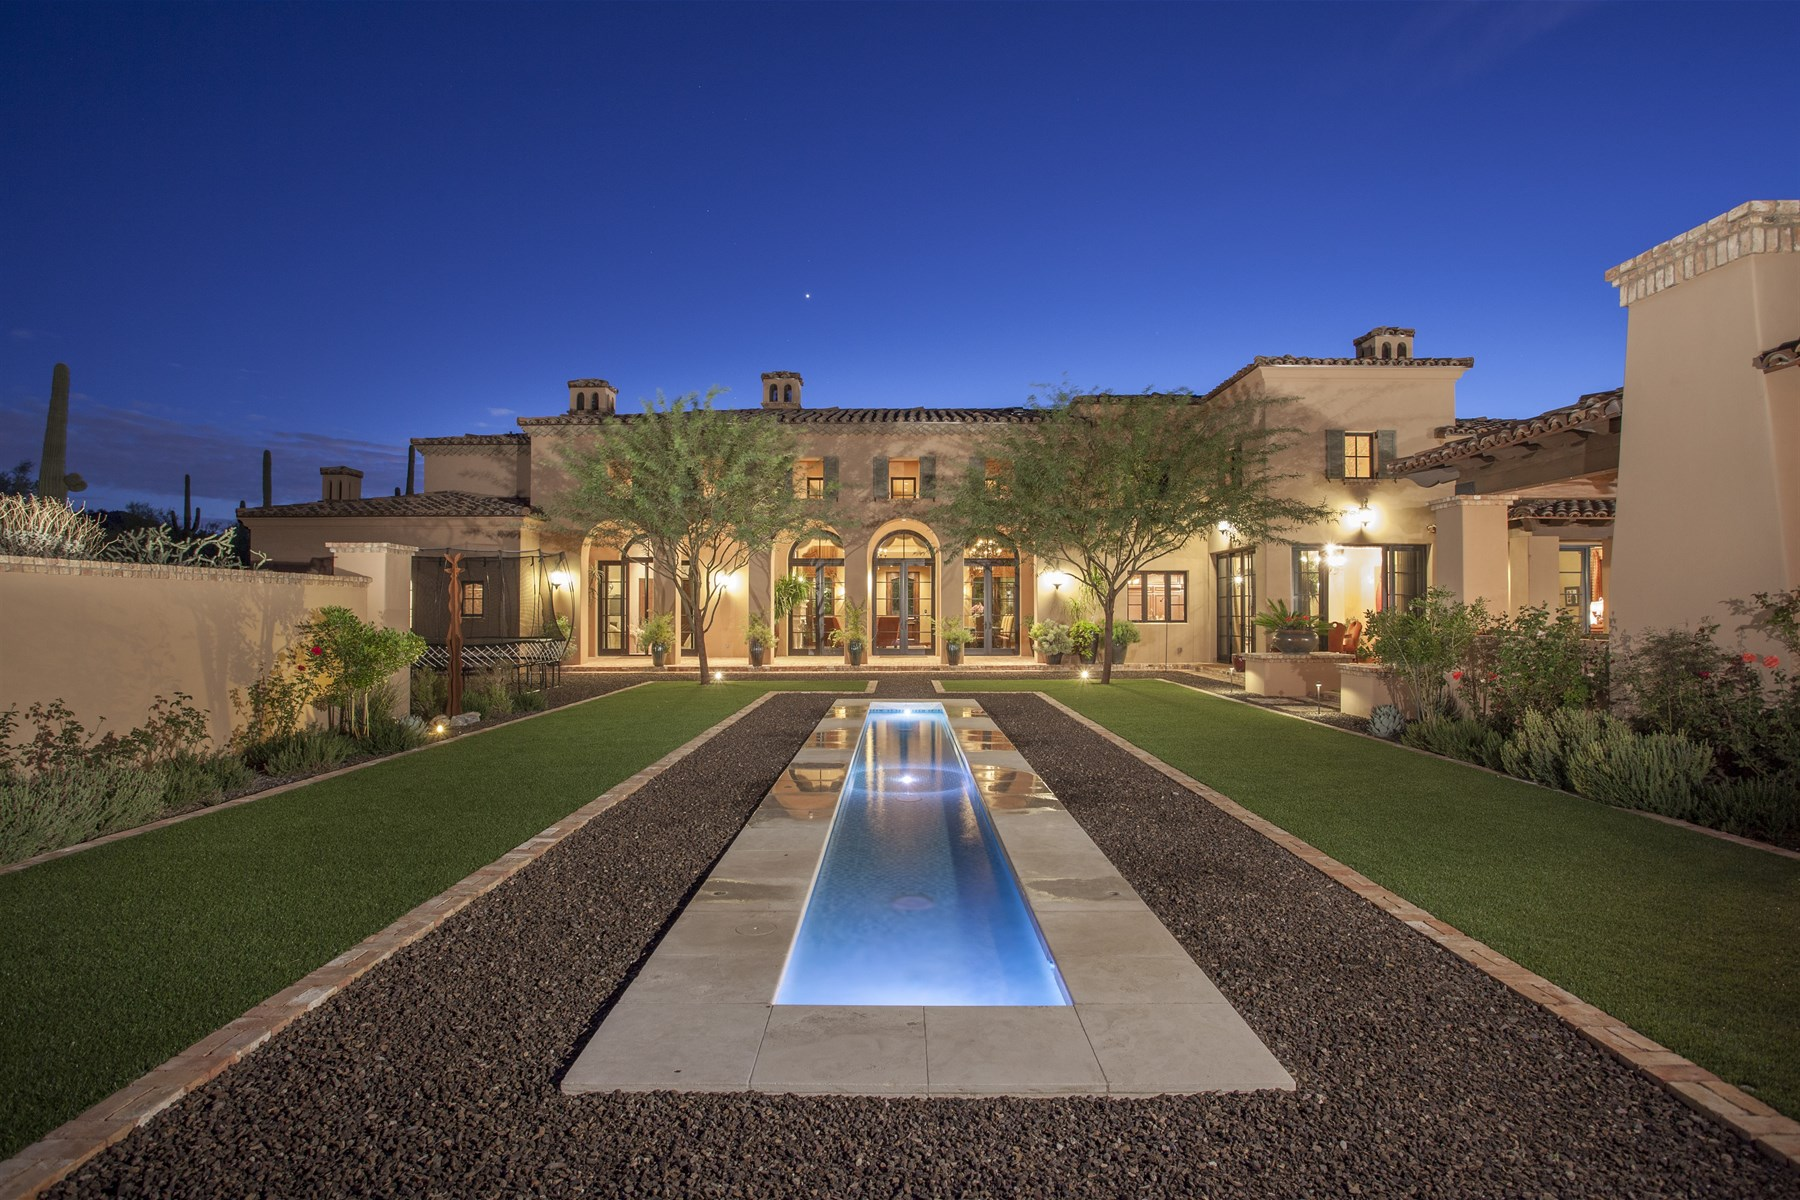 Частный односемейный дом для того Продажа на Beautifully Crafted Luxury Estate in Guard Gated Silverleaf's Upper Canyon 11038 E Saguaro Canyon Trail #1531 Scottsdale, Аризона 85255 Соединенные Штаты